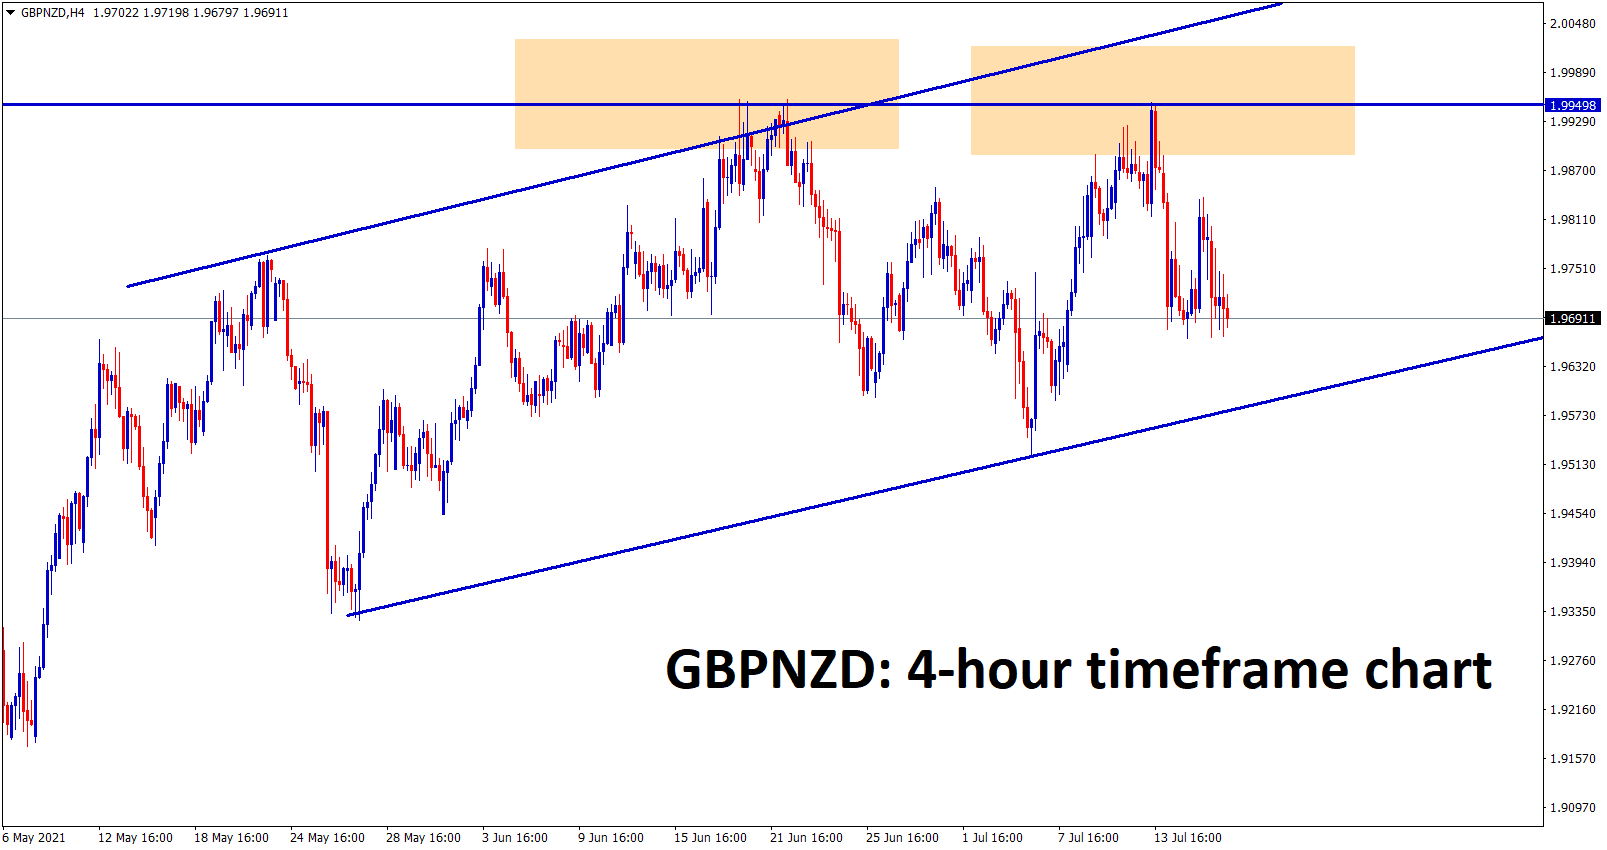 GBPNZD is moving in an Ascending channel the major resistance is highlighted if ti breaks the top it will surge more.